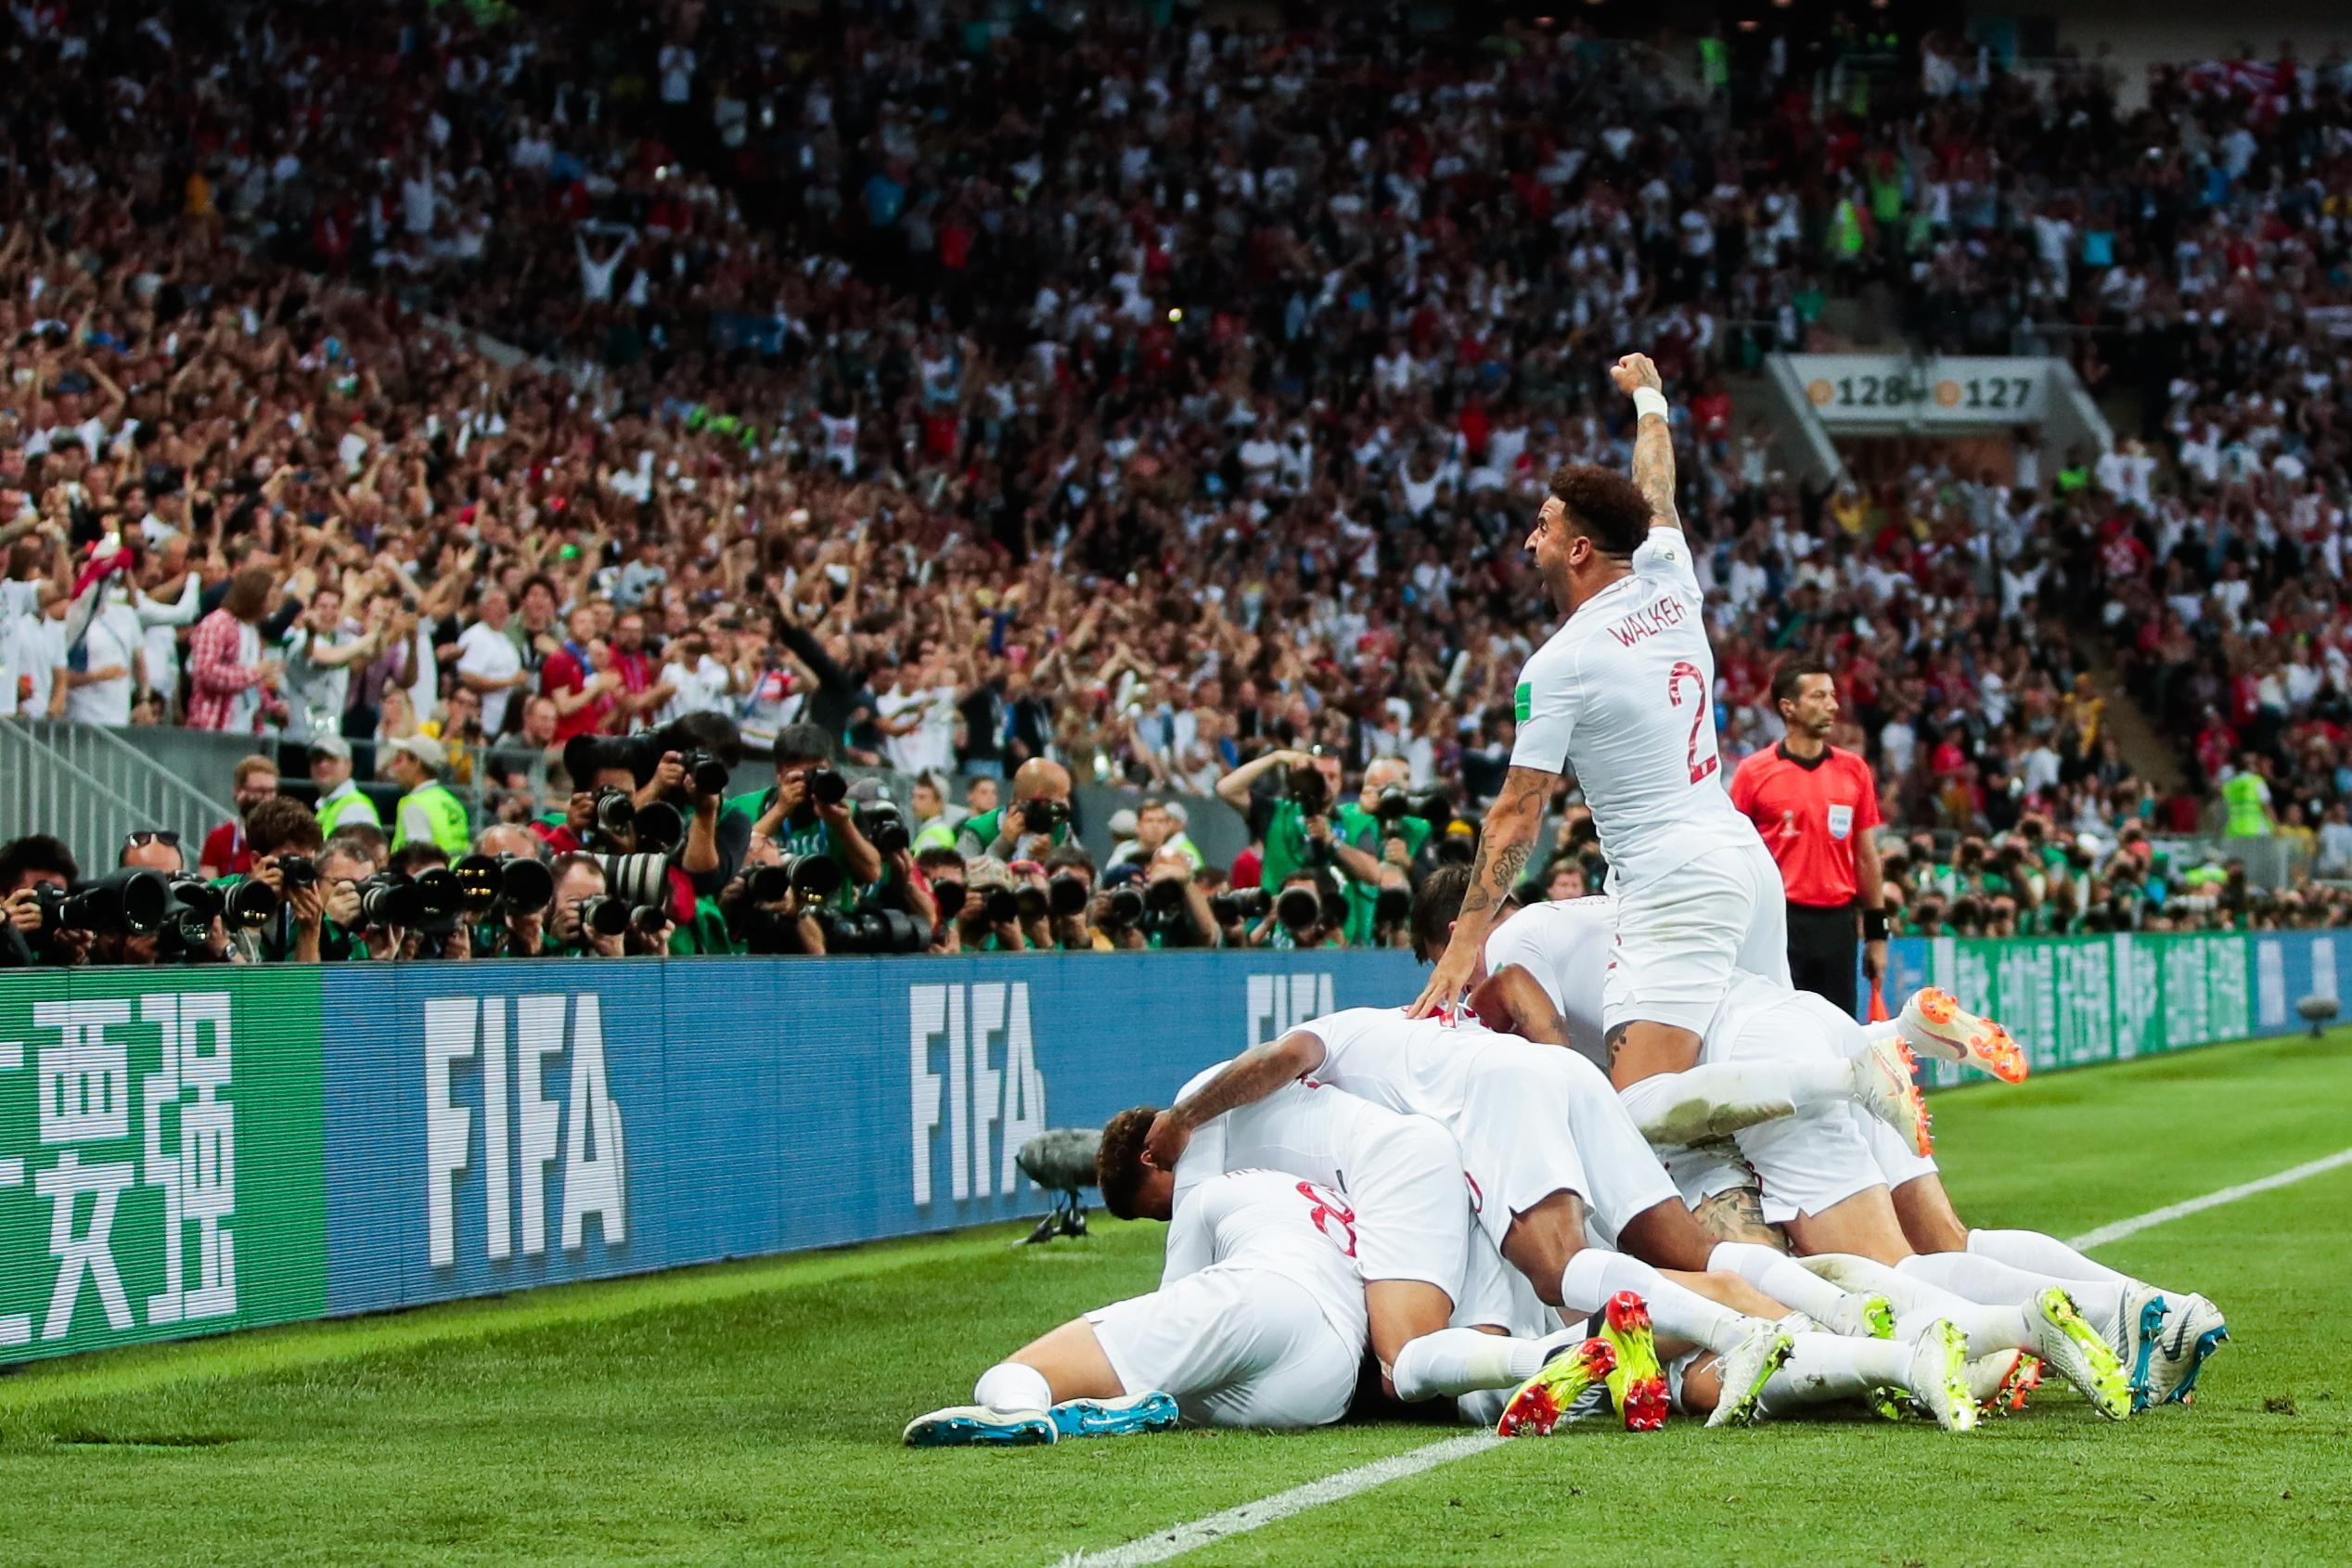 England reached the semi-finals of the World Cup and united the nation